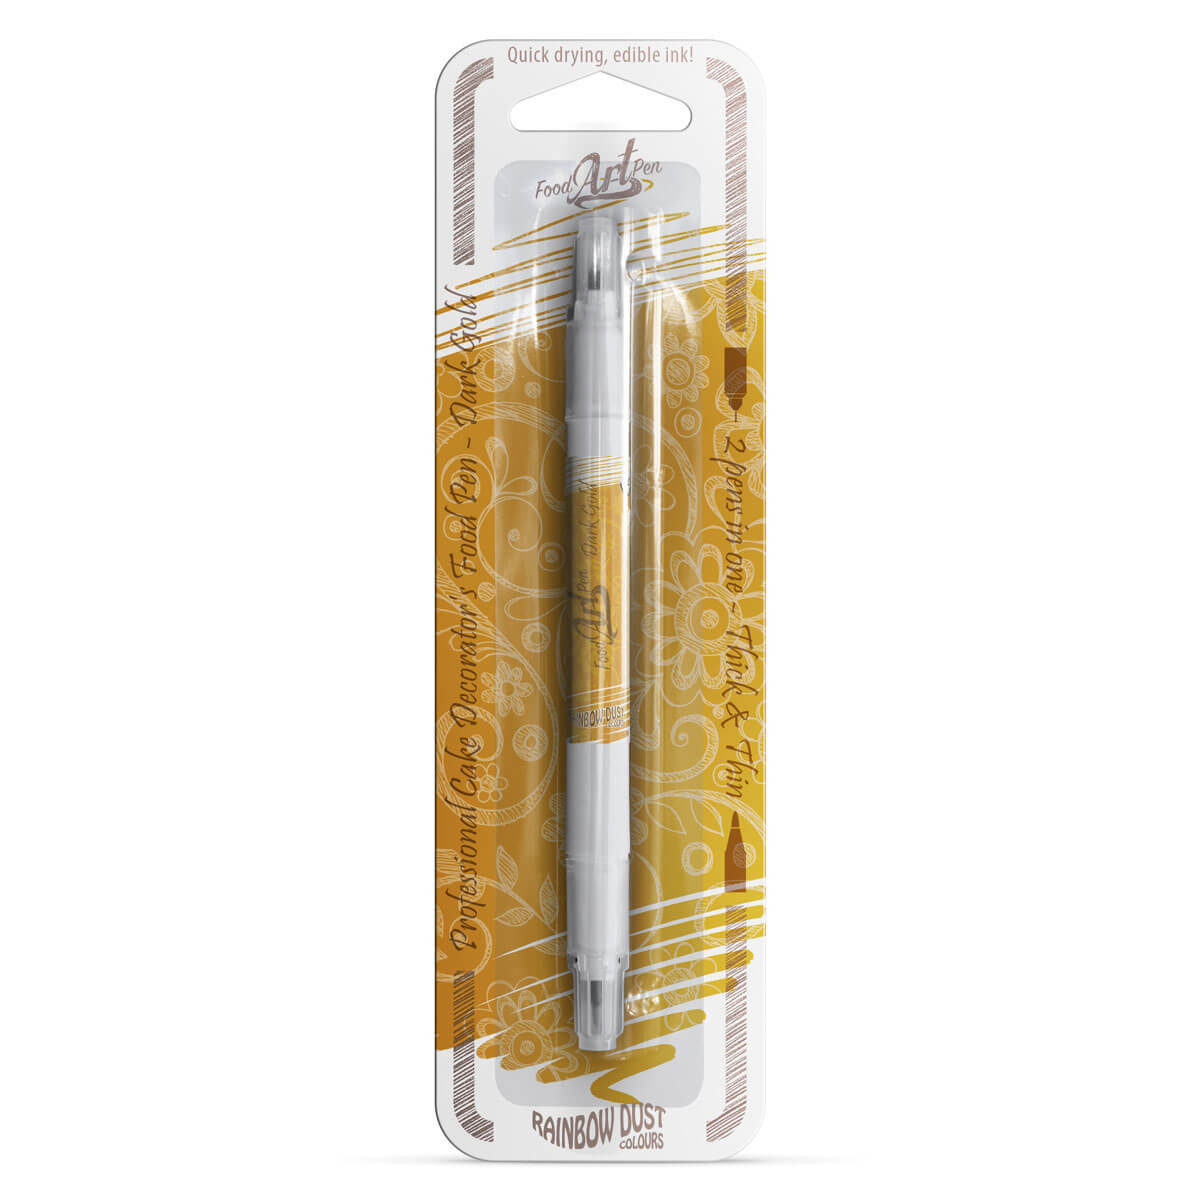 Rainbow Dust - Food Art Pen - Dark Gold/ Dourado Escuro